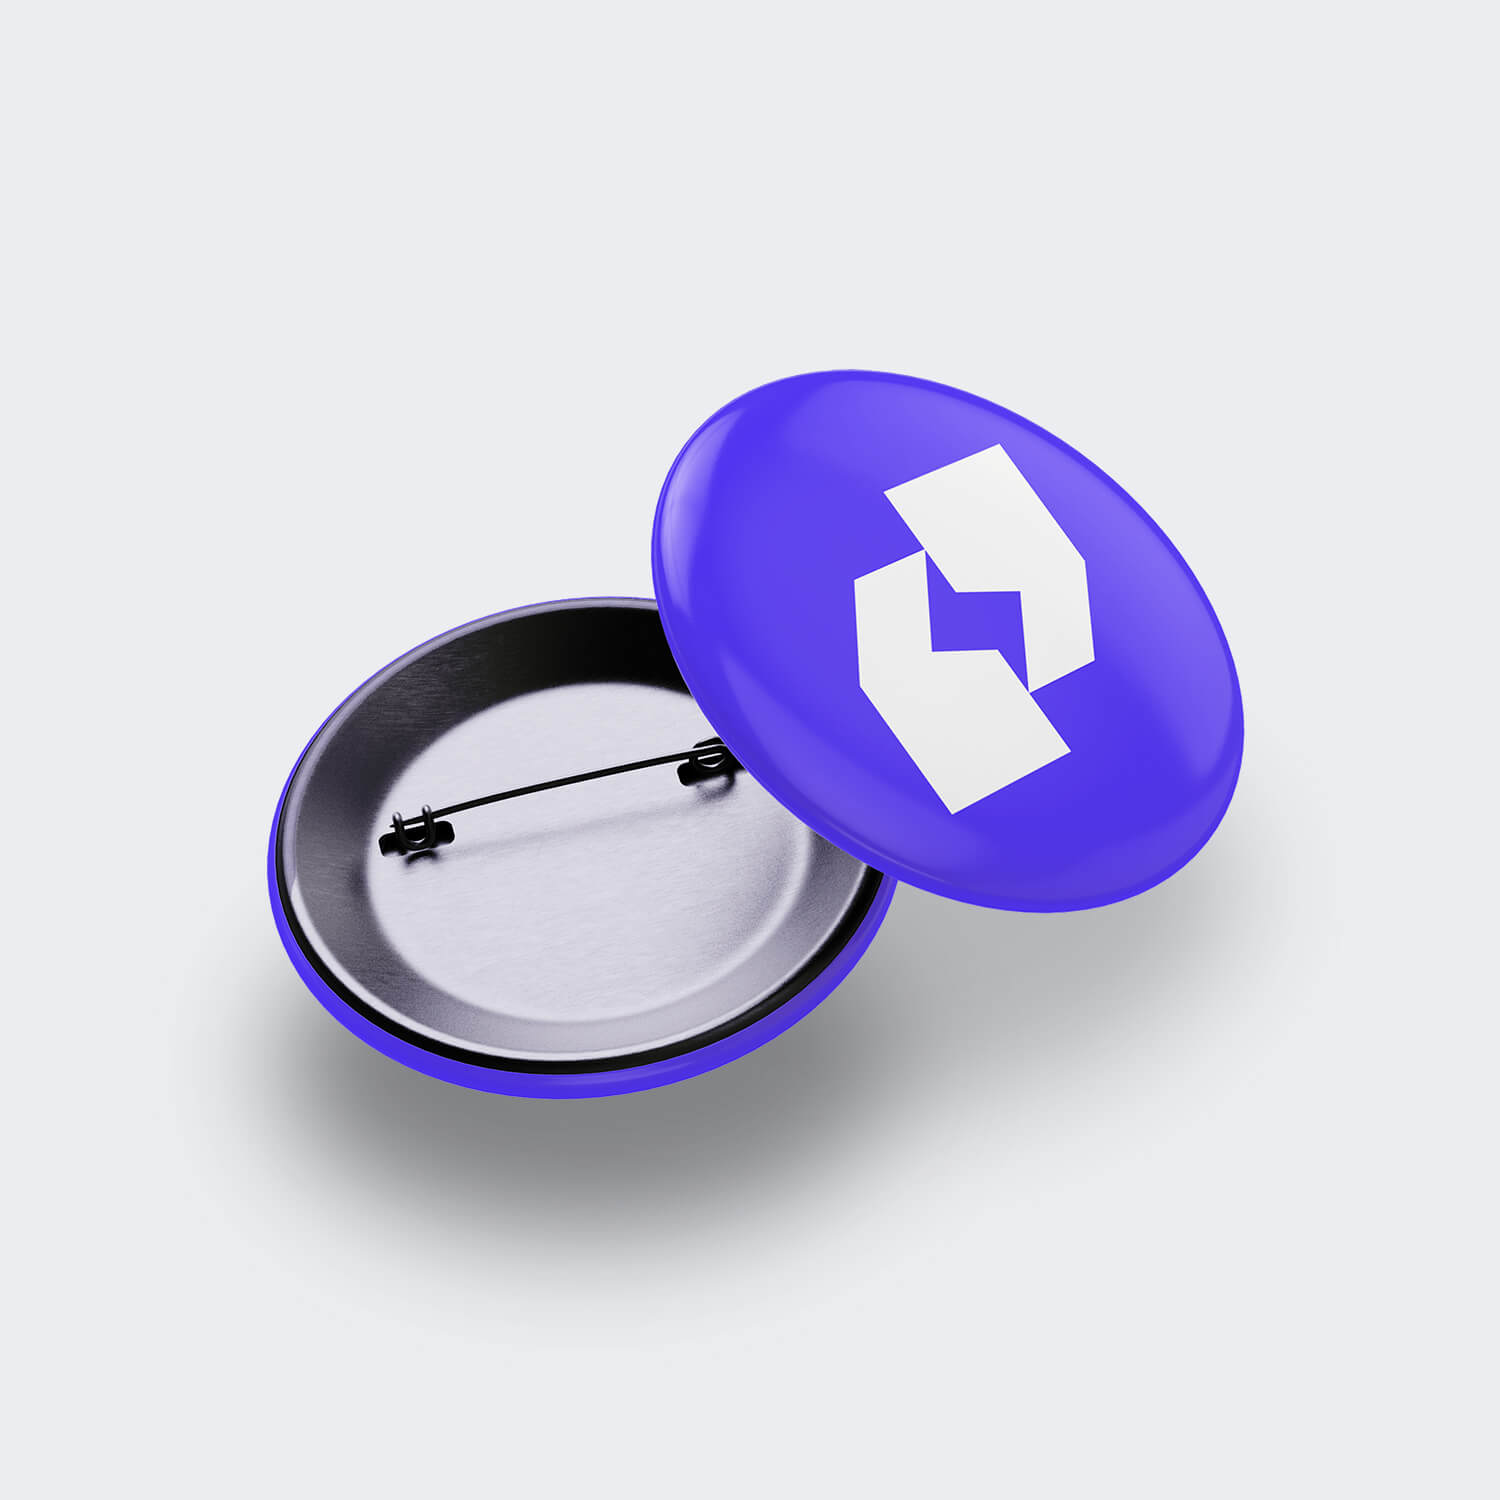 Two purple buttons displaying a white Lightning Talks symbol